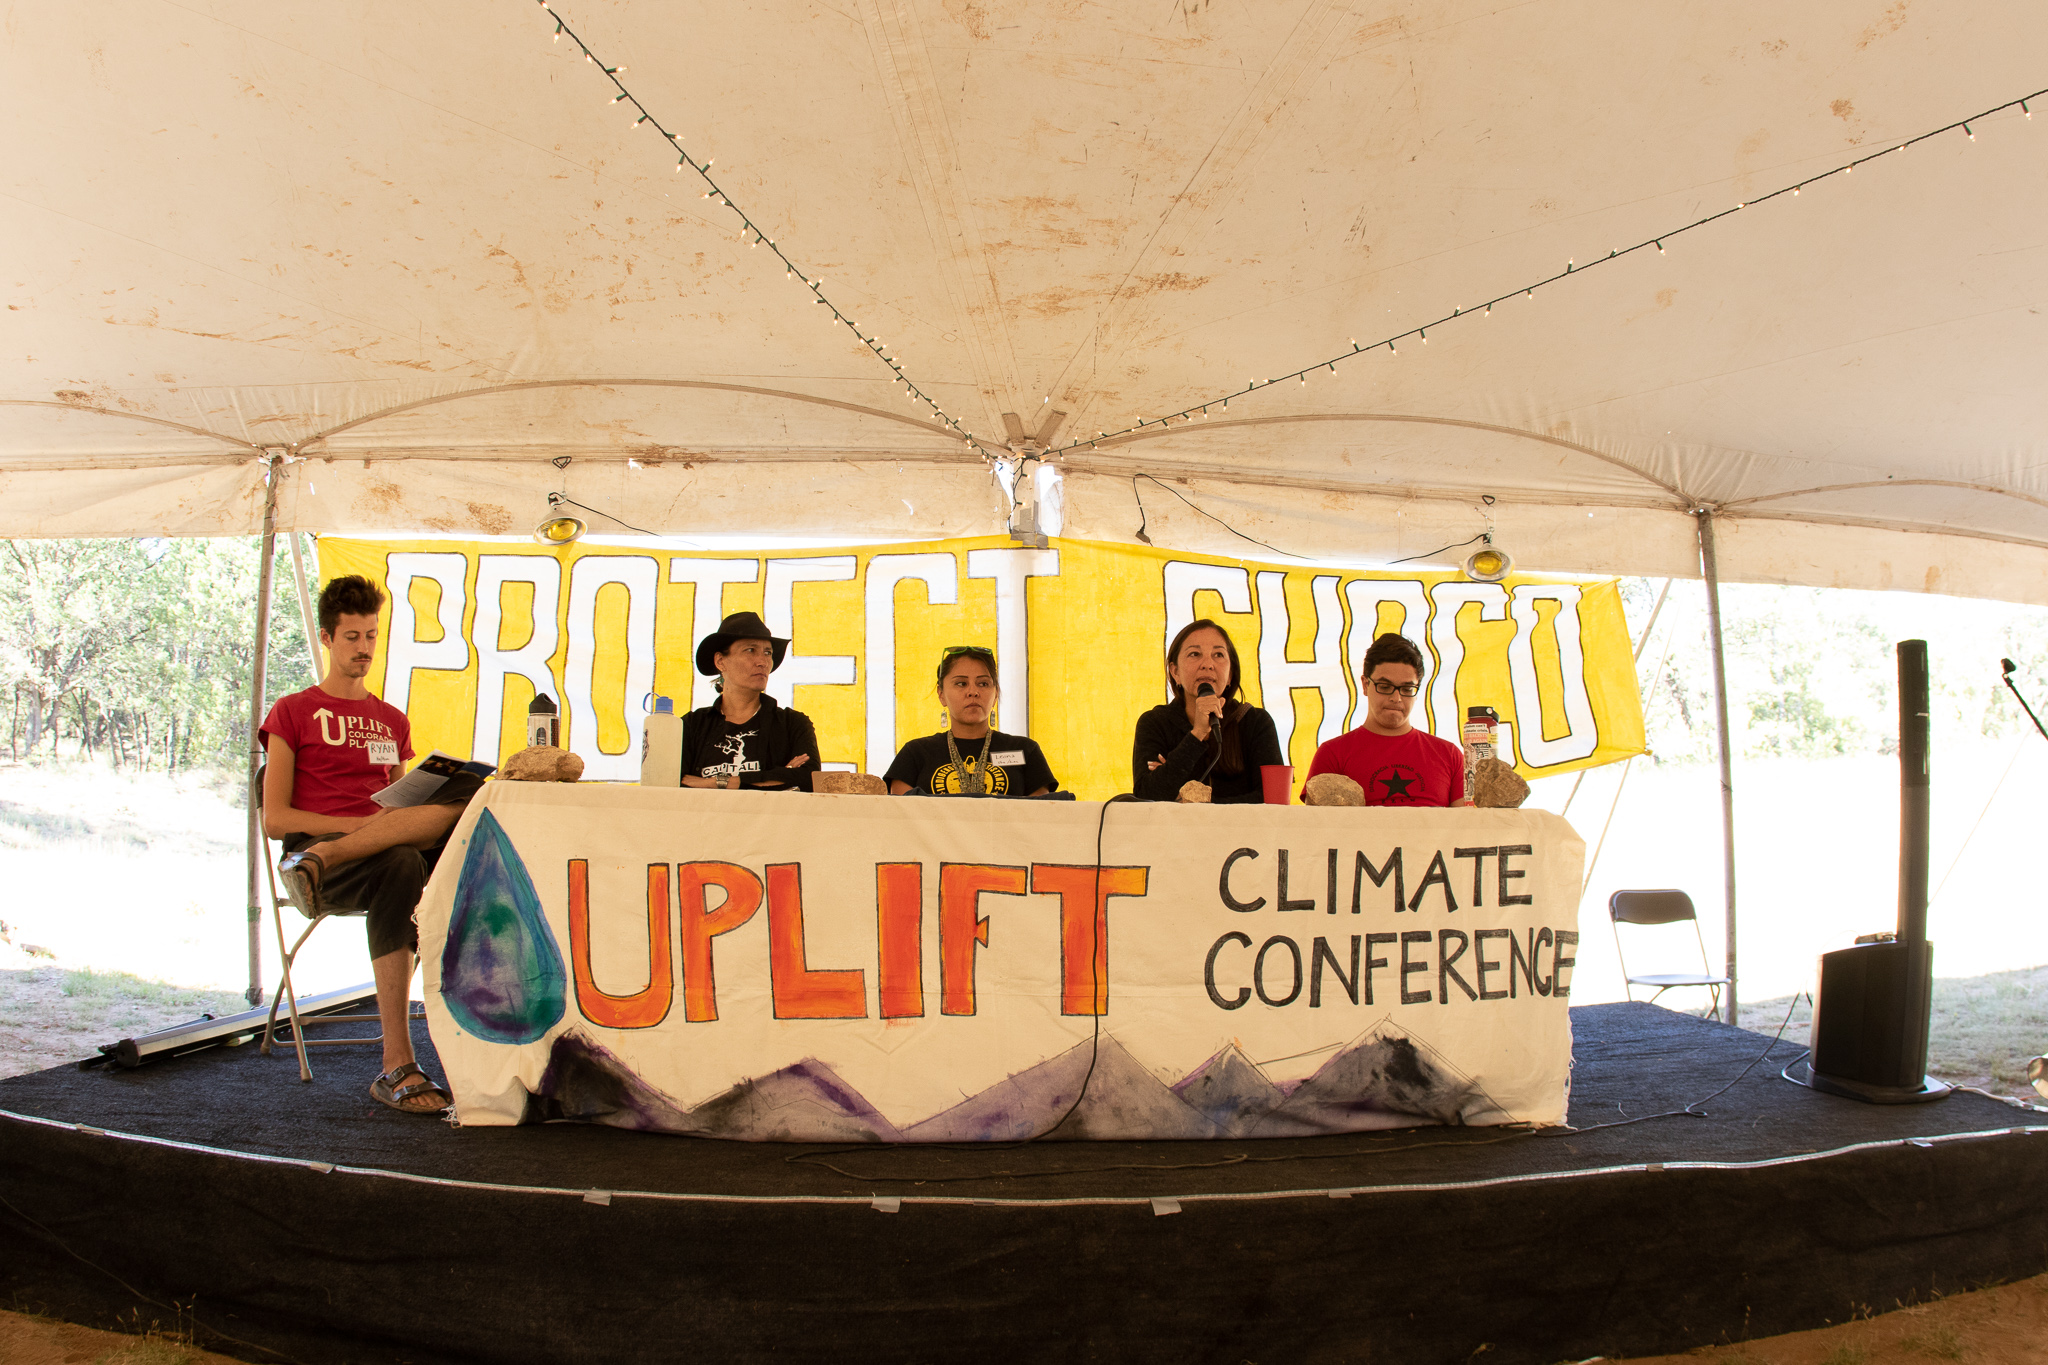 (From left to right) Panelists Klee Benally, Leona Morgan, Nicole Horseherder and Diego Martinez-Lugo discuss extractive economies in the Southwest and potential solutions, on Sept. 15, while Ryan Beam (far left) moderates the conversation. (Photo Credit: Paper Rocket Productions)